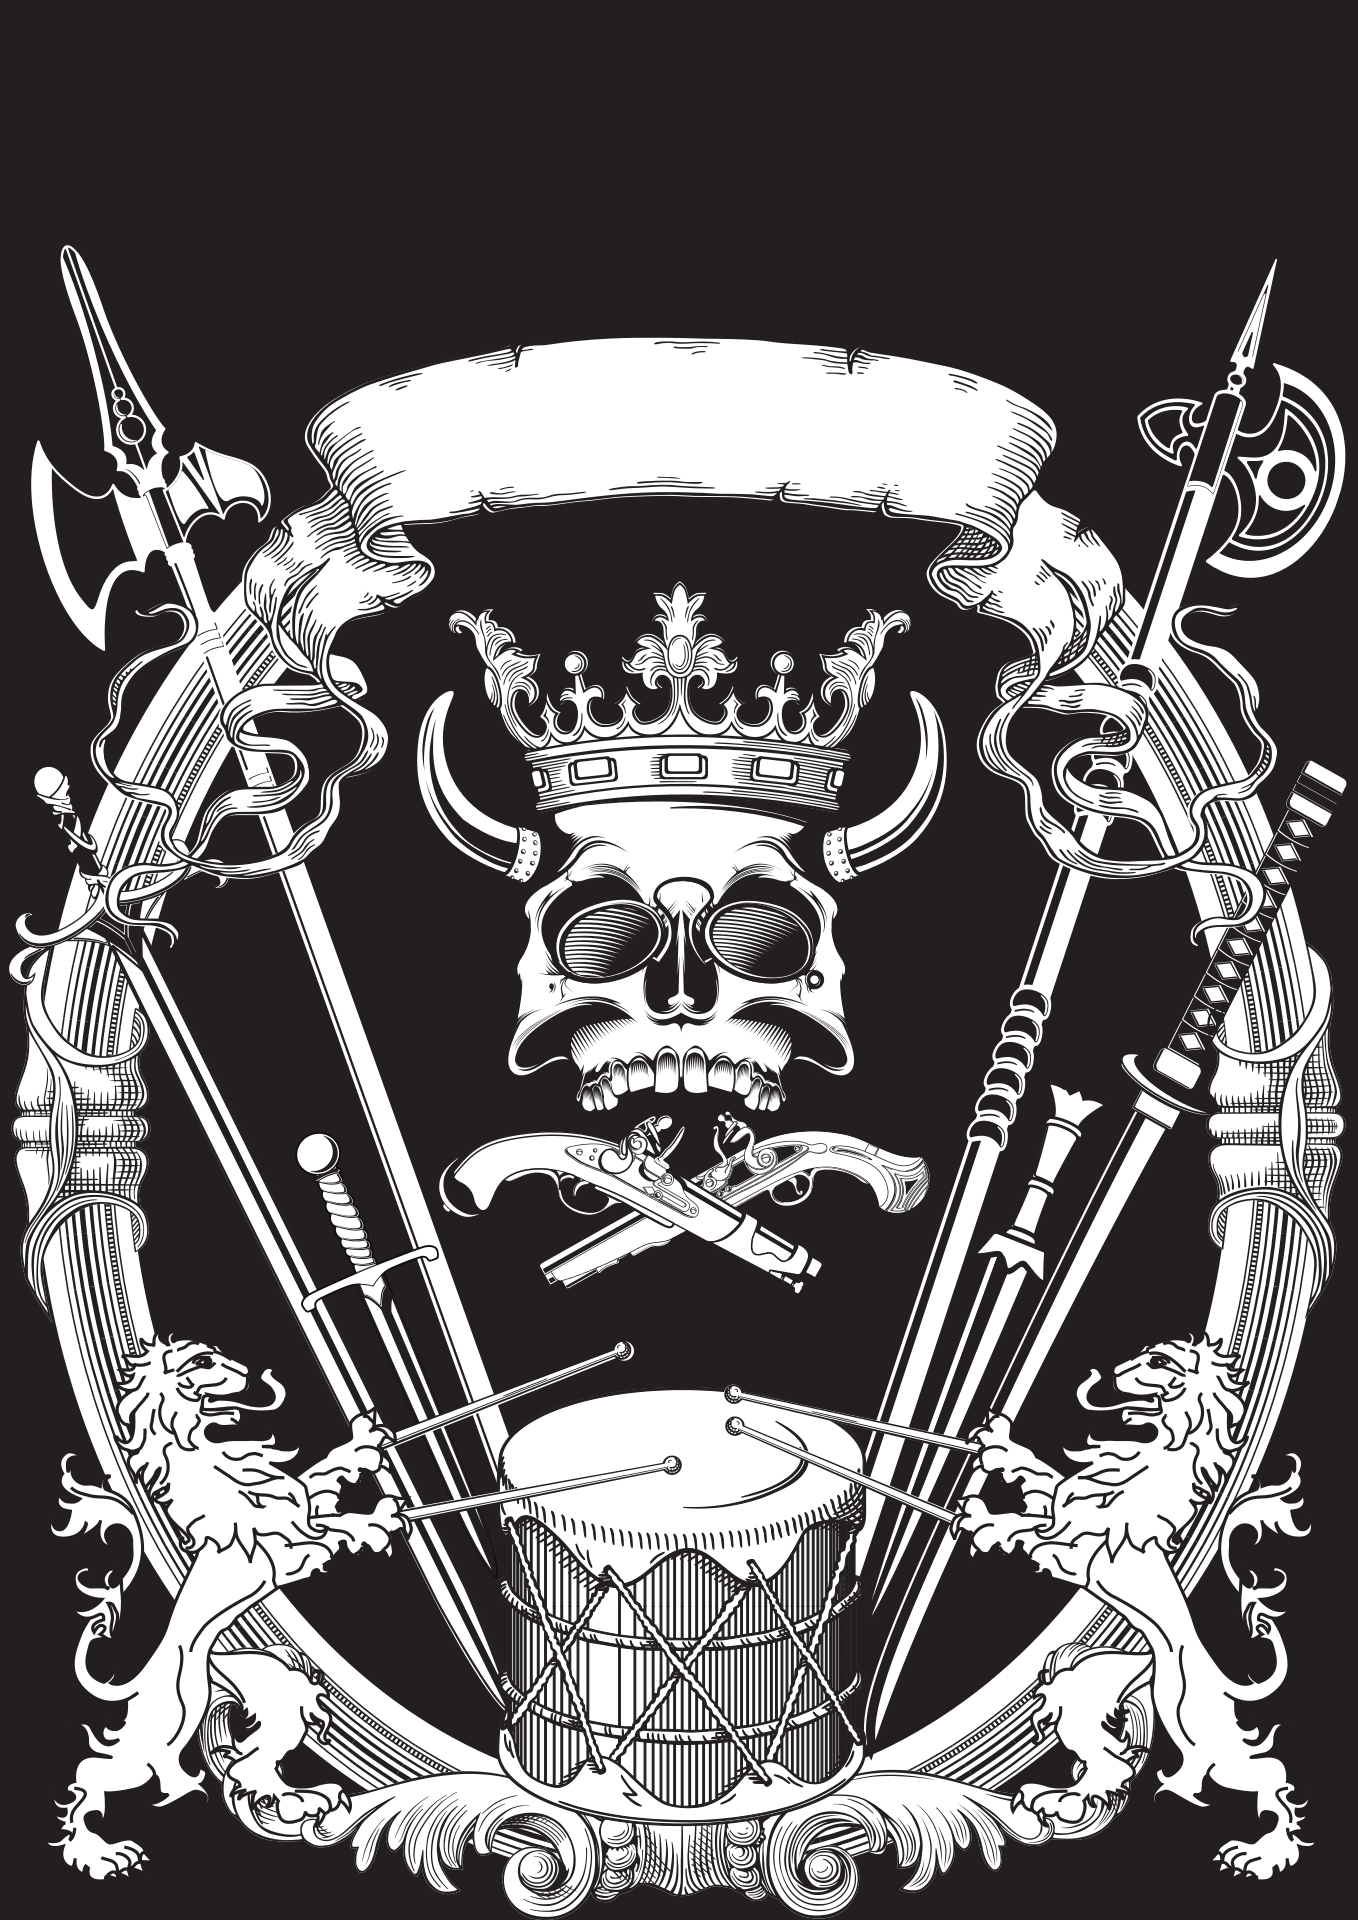 Heraldic crest with two lions drumming under skull